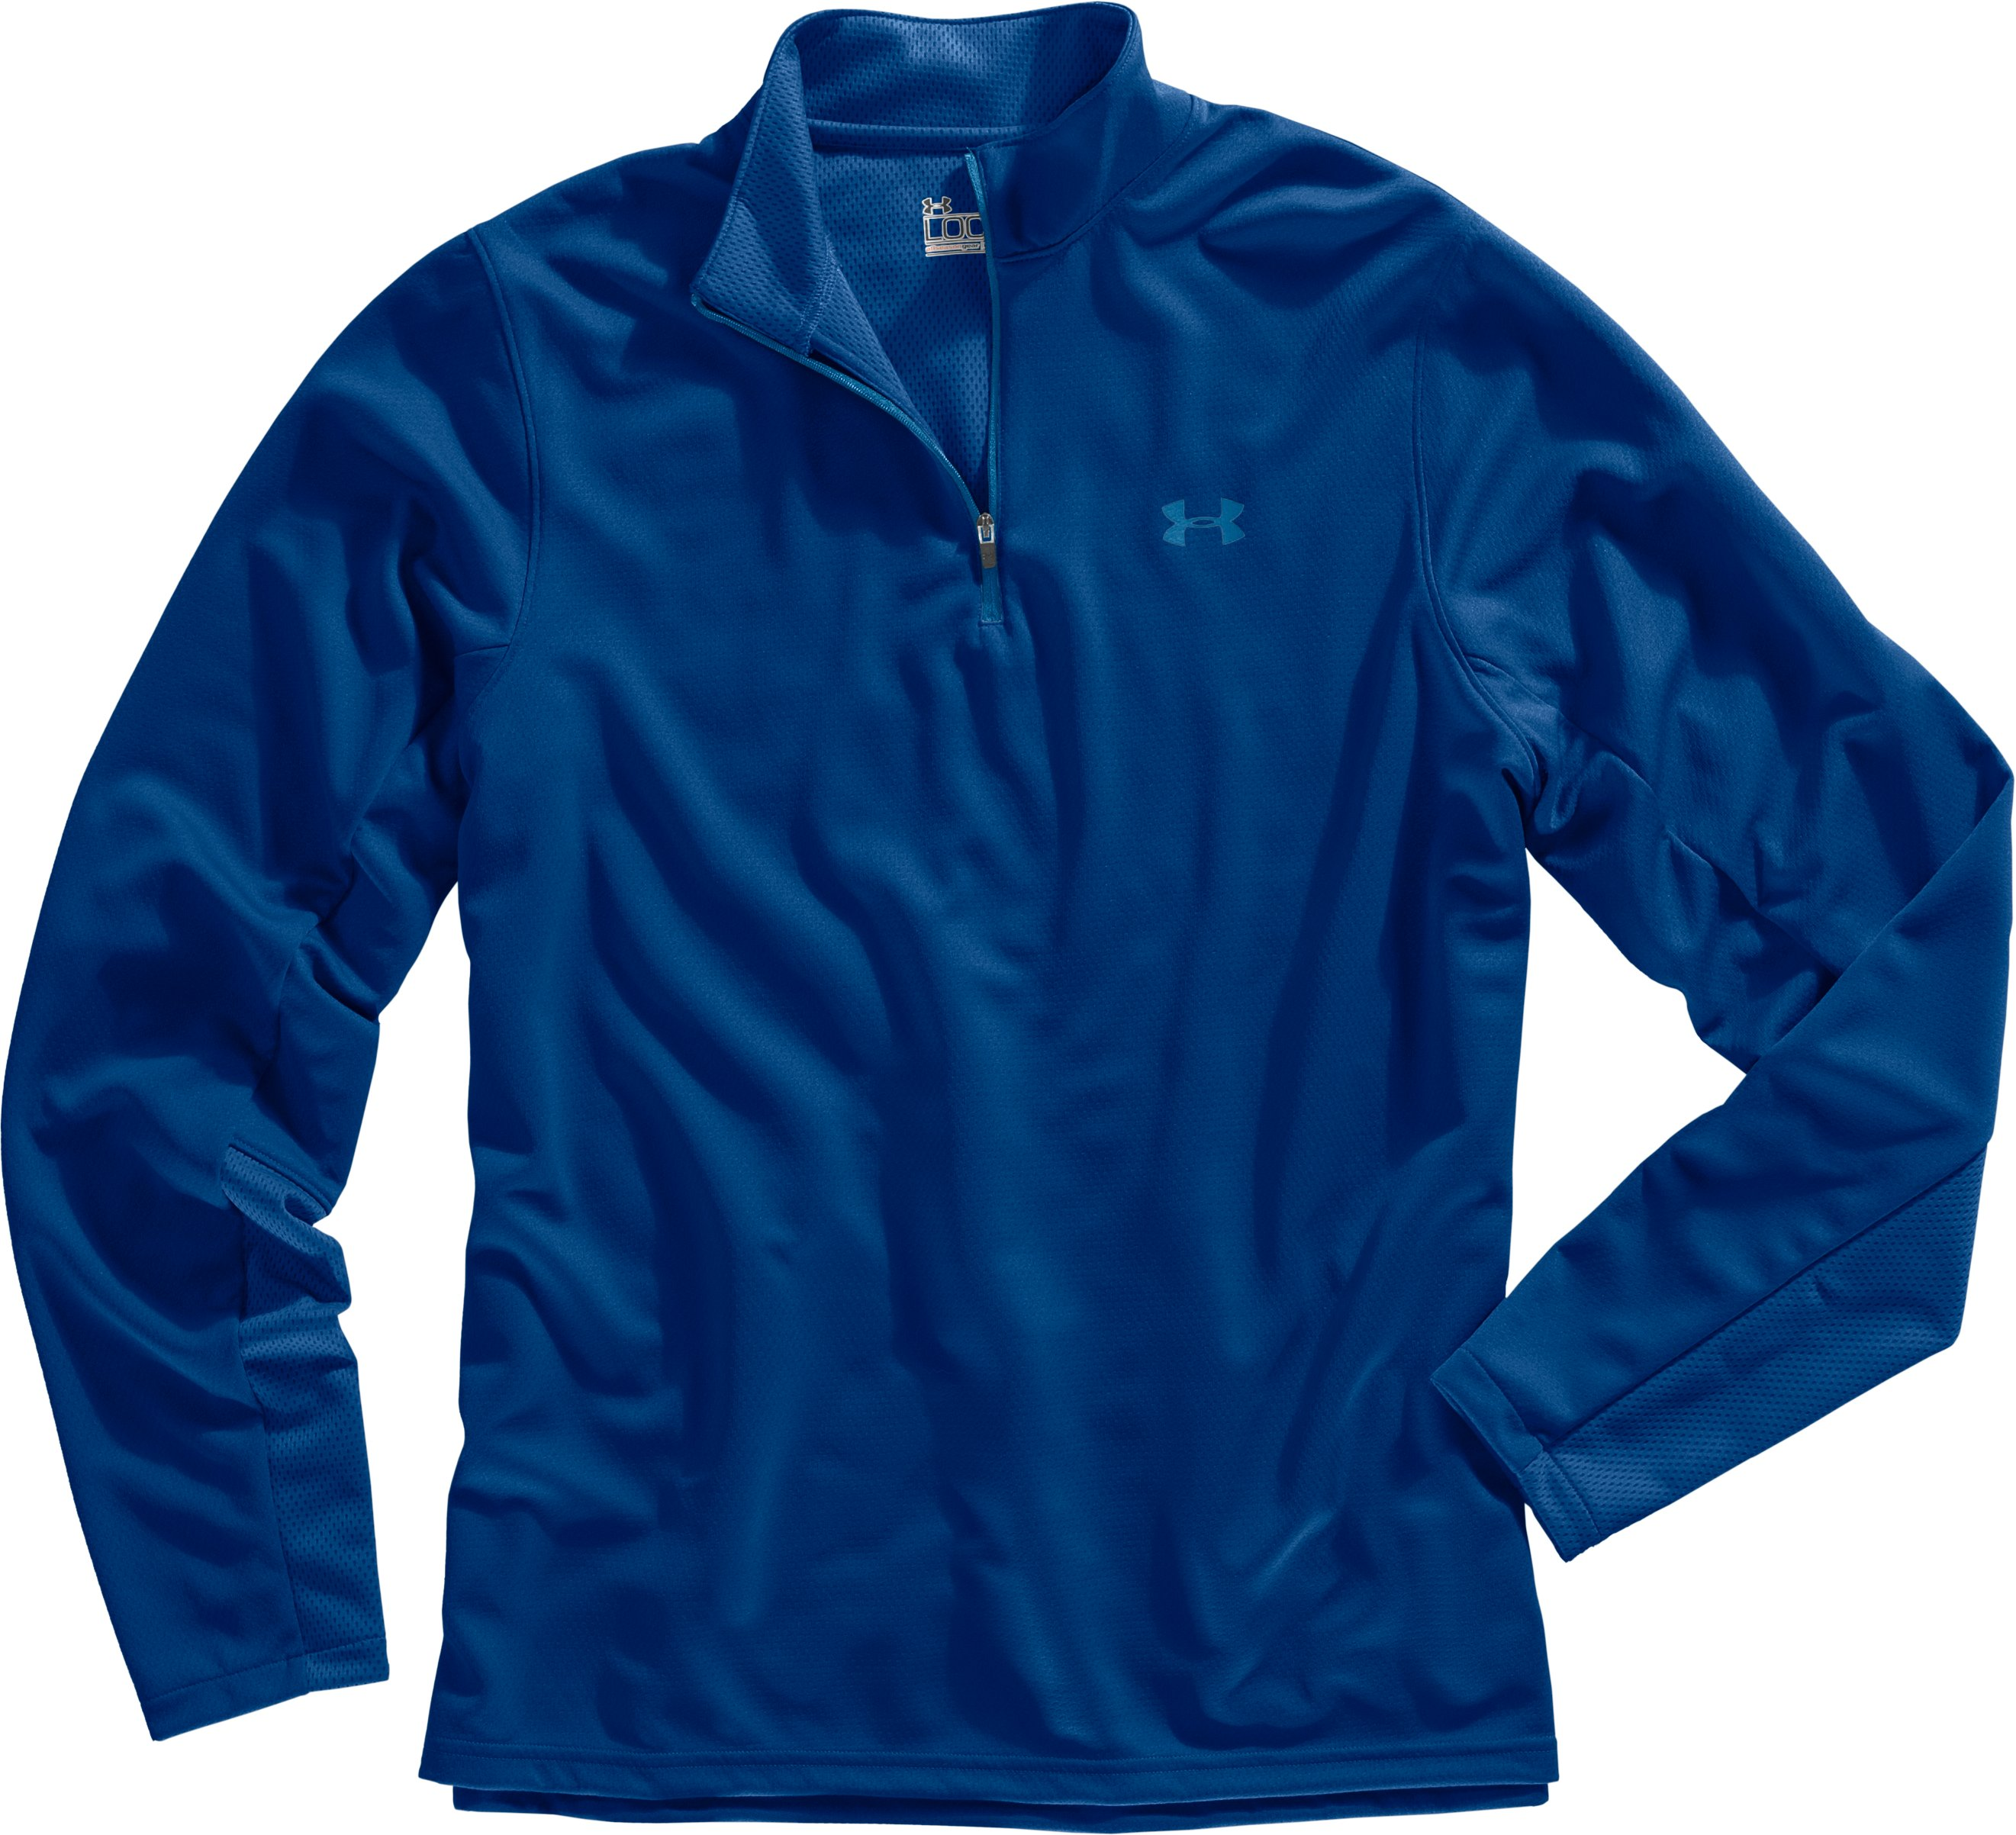 Men's AllSeasonGear® ¼ Zip Golf Jacket, EMPIRE BLUE, Laydown